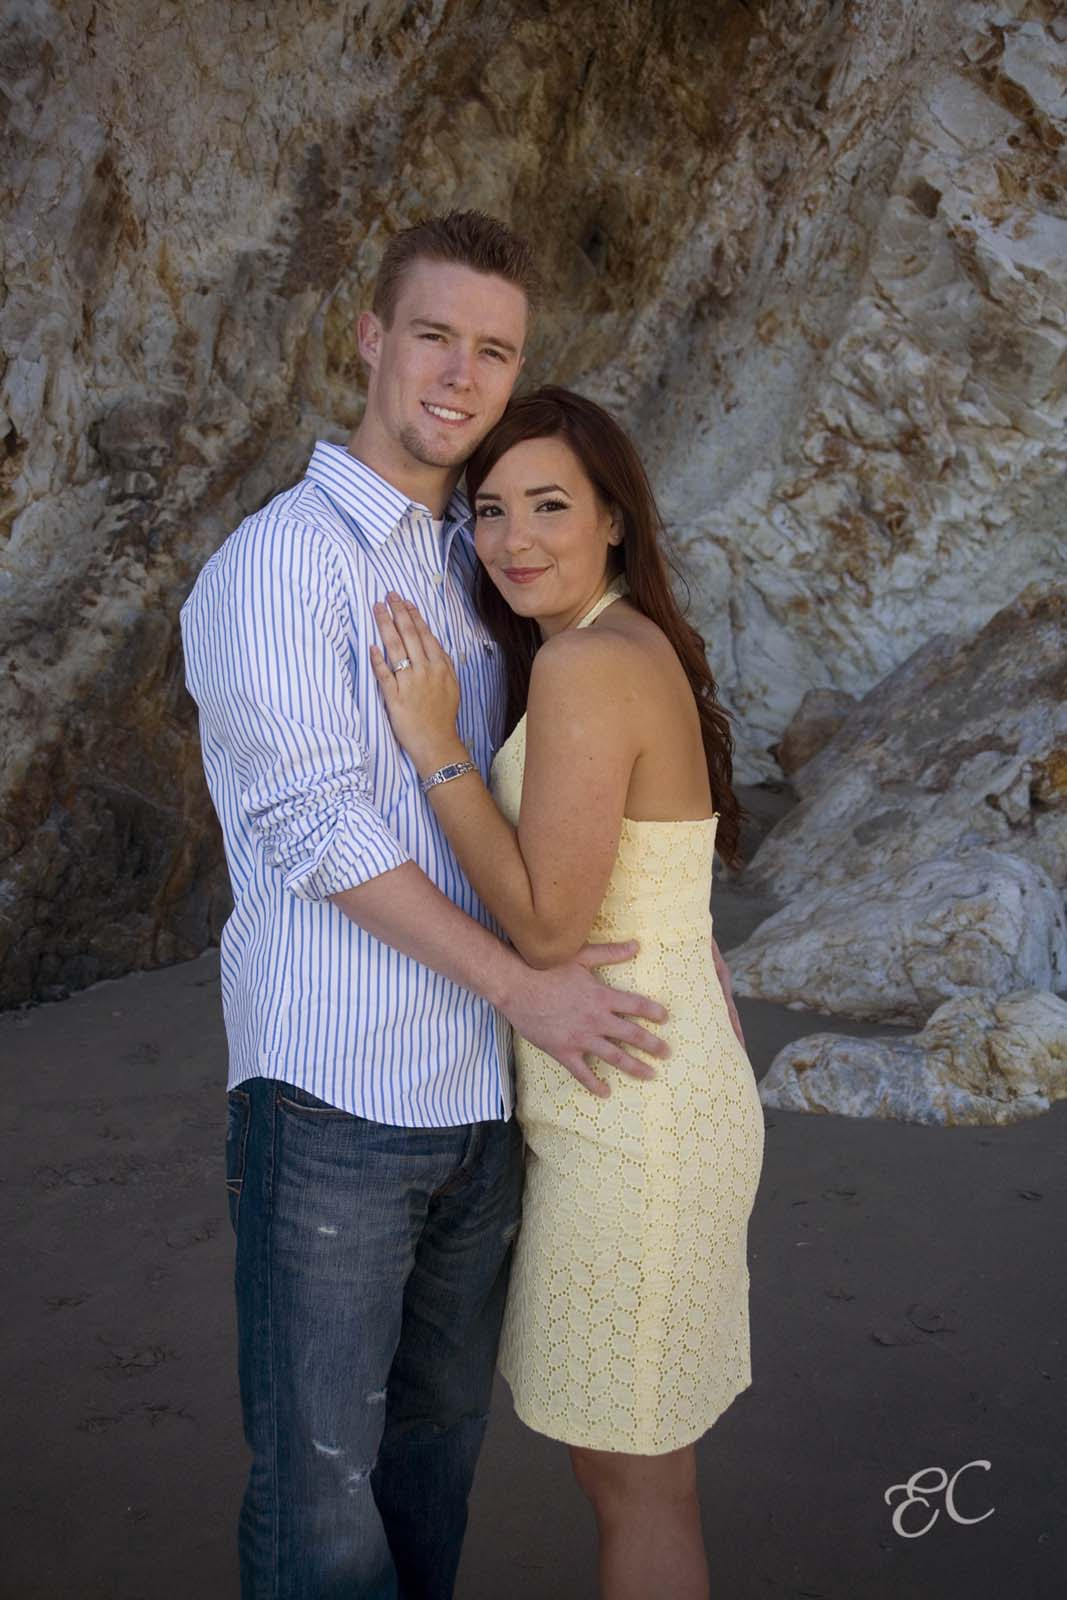 young couple celebrating engagement portrait at beach rock backdrop